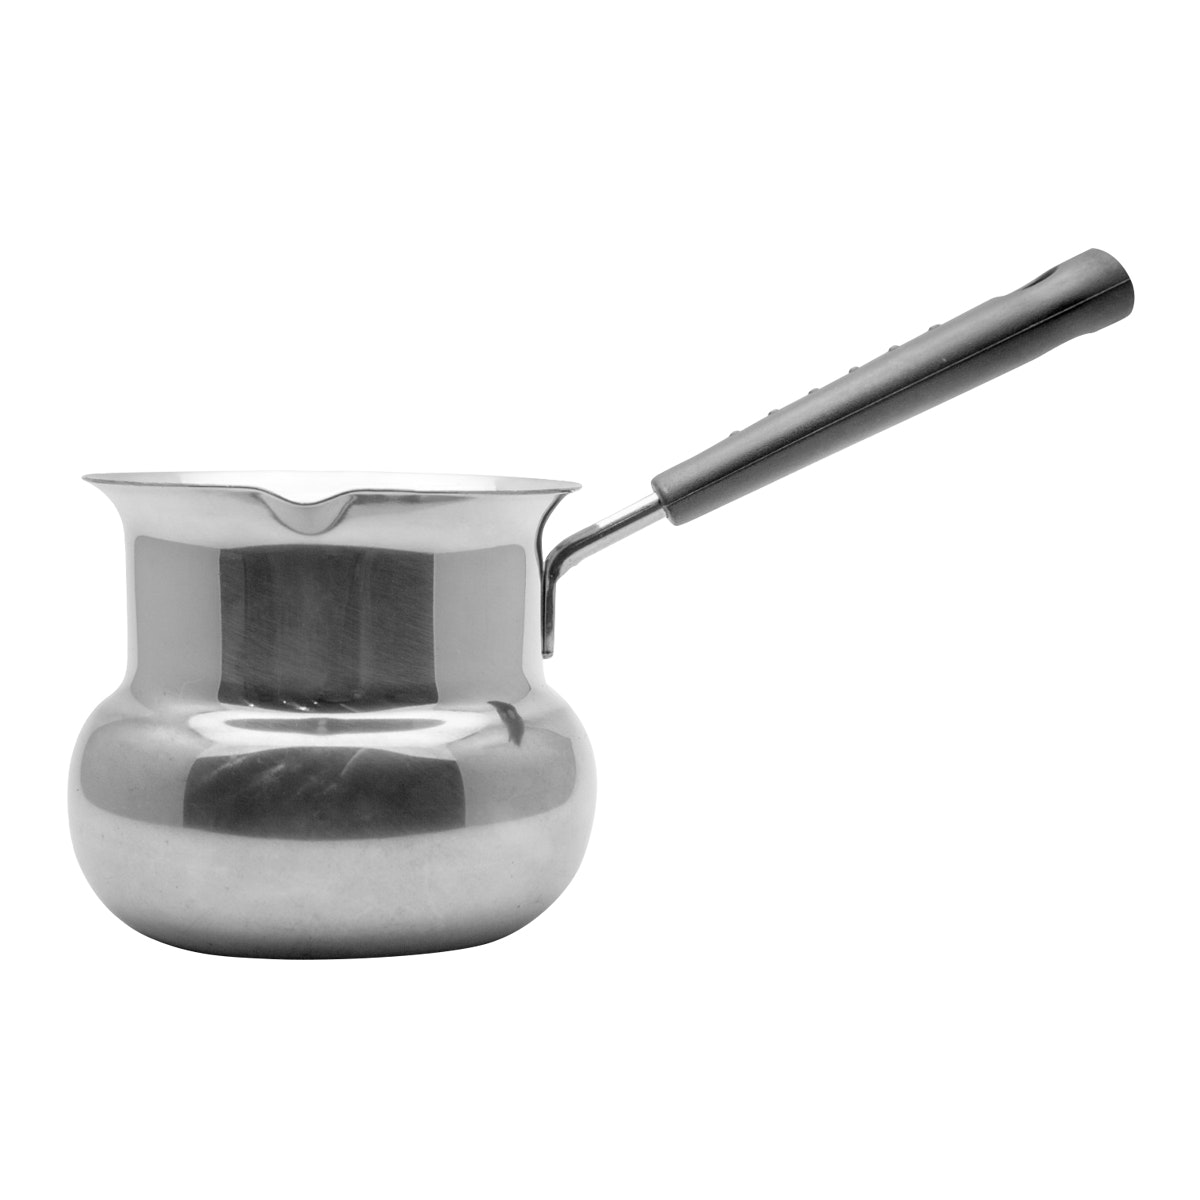 HAN Ibric/Ibrik/Turkish Coffee Maker/Panci Mini Stainless Handle Bakelite Tebal Model Drum IBRD 900 Ml